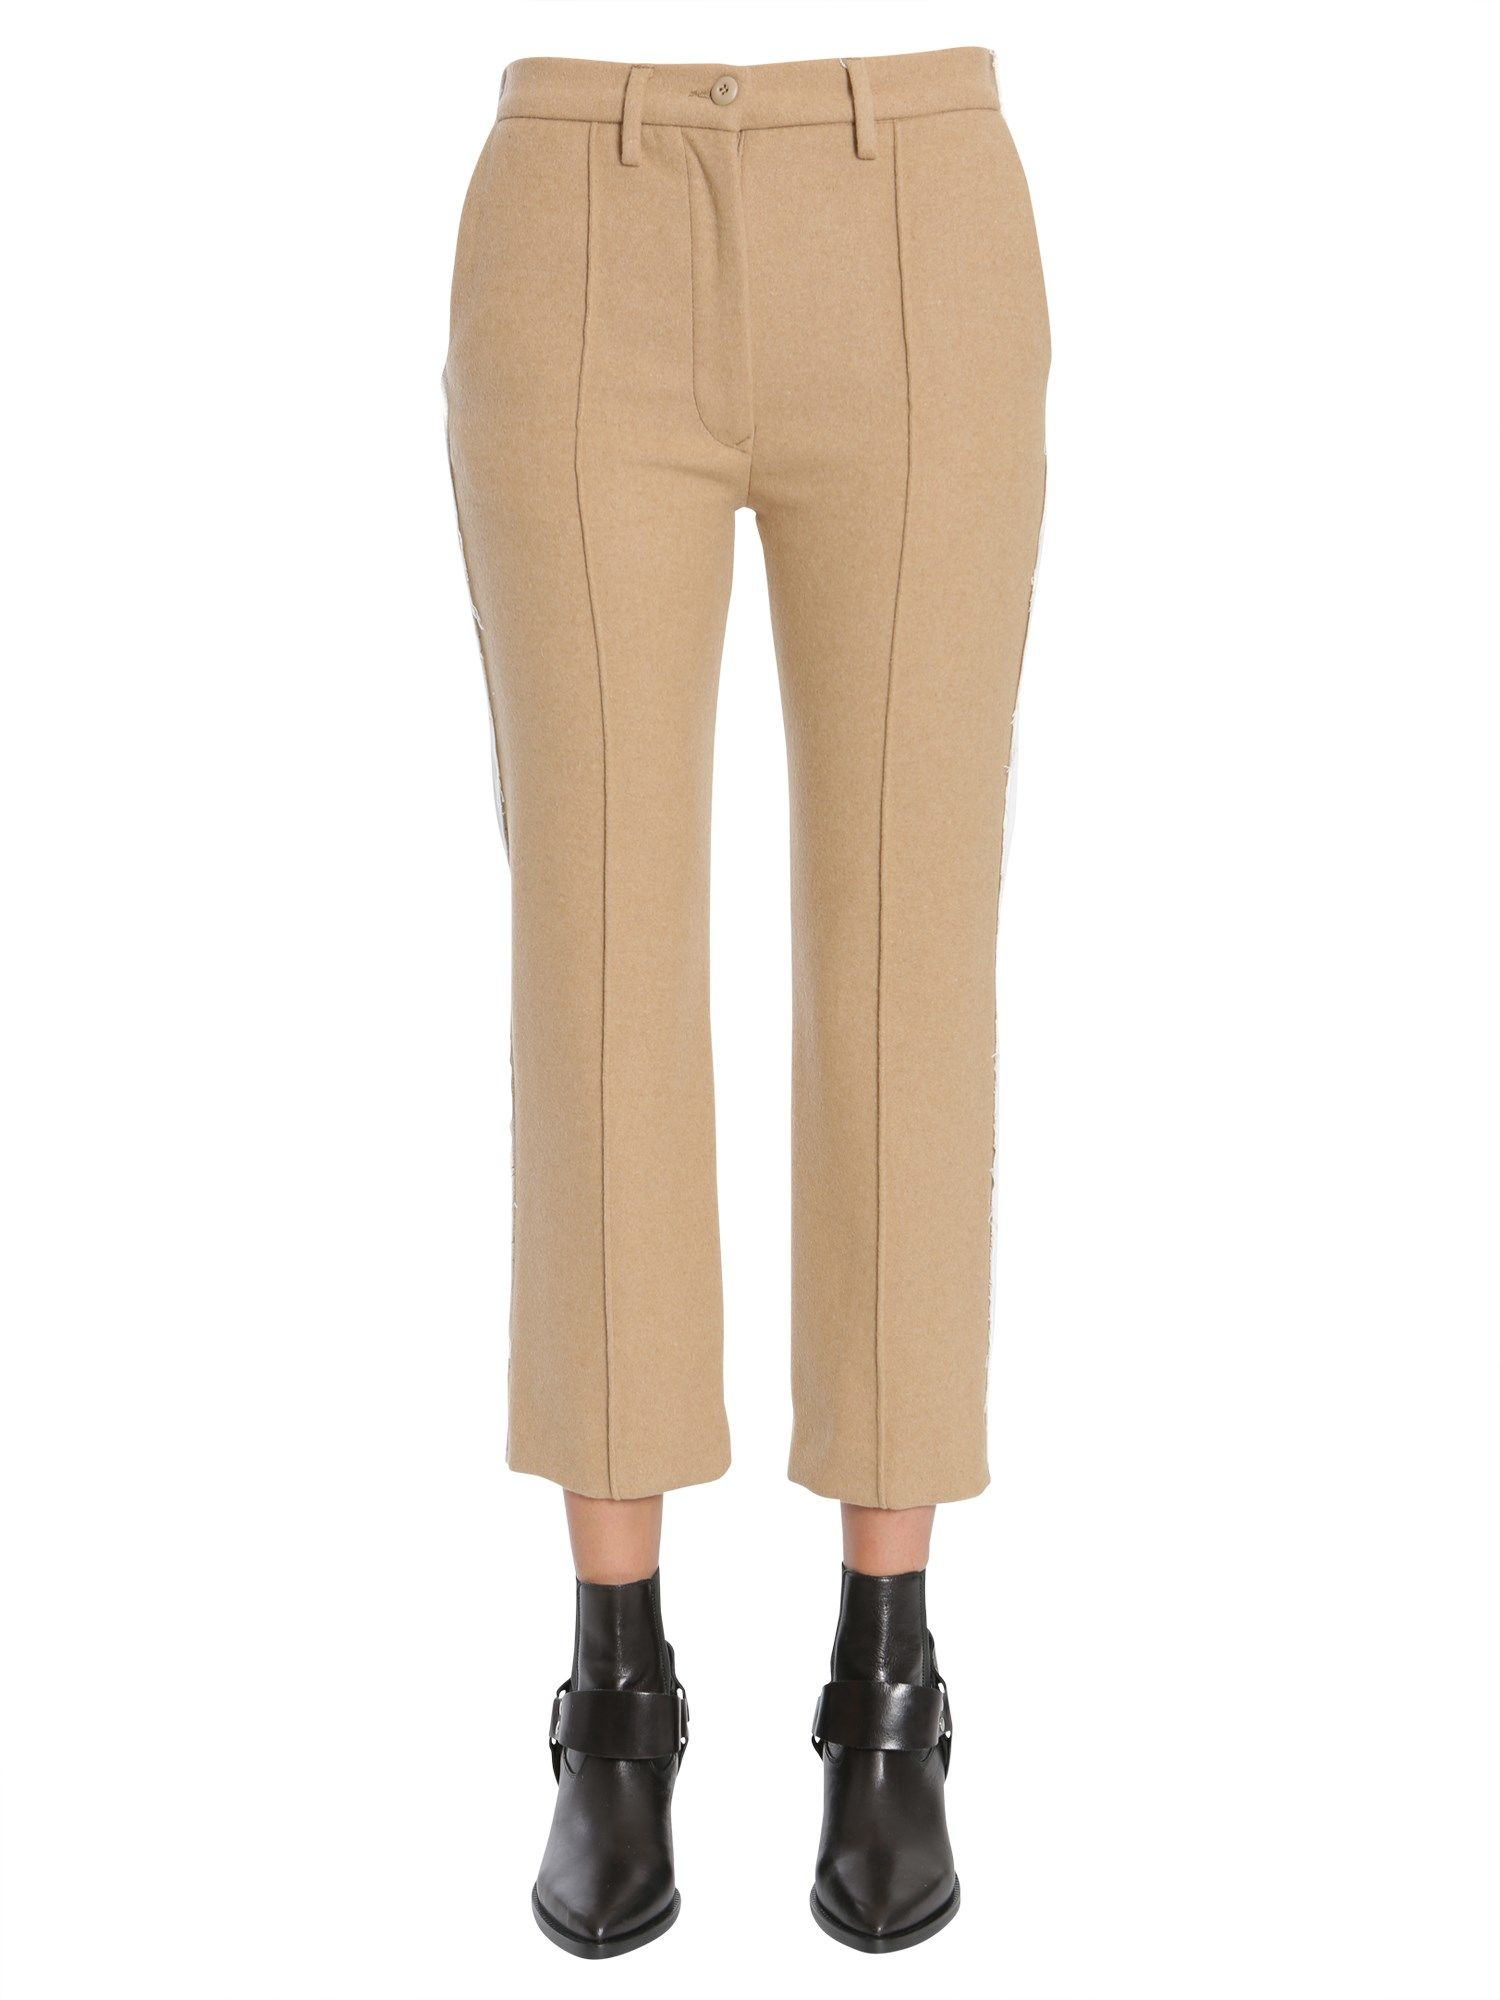 Mixed Material Trousers